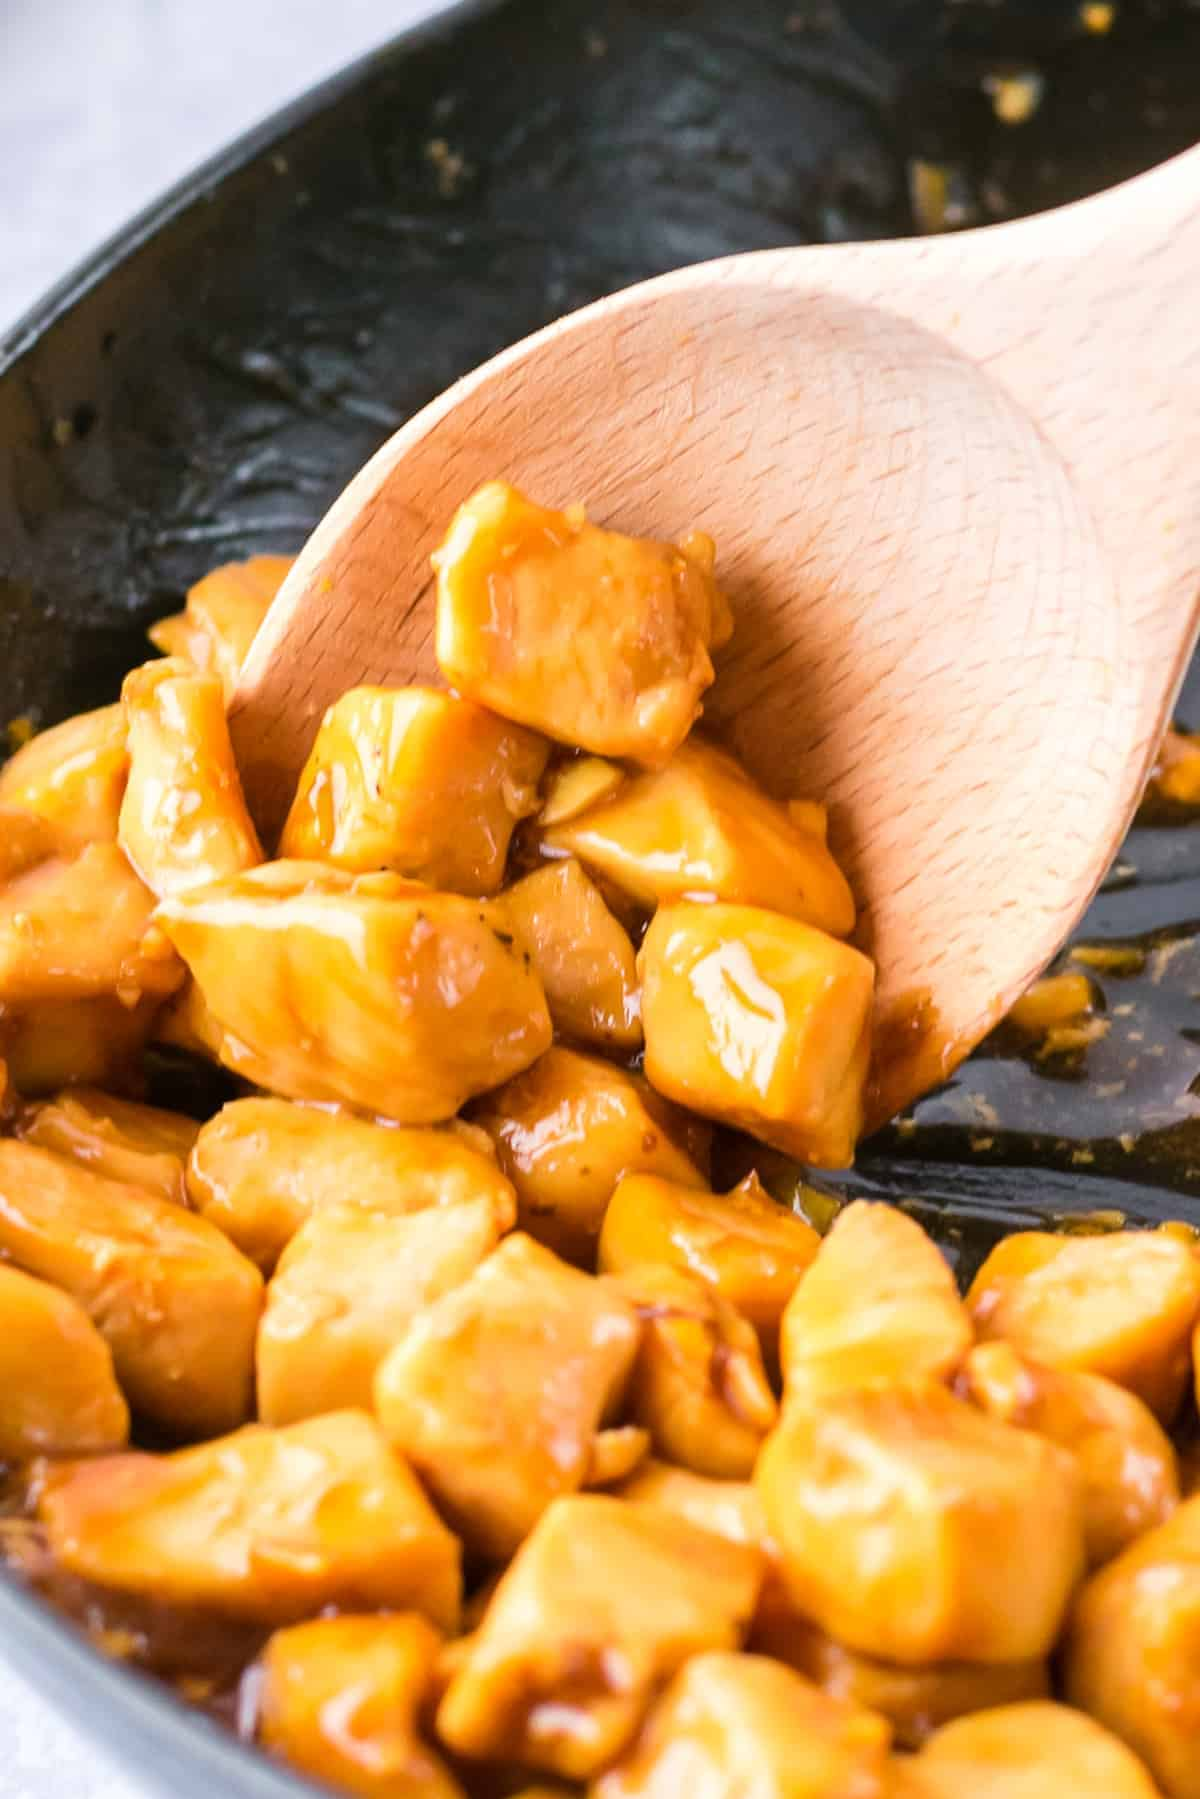 spoon lifting up diced teriyaki chicken breast